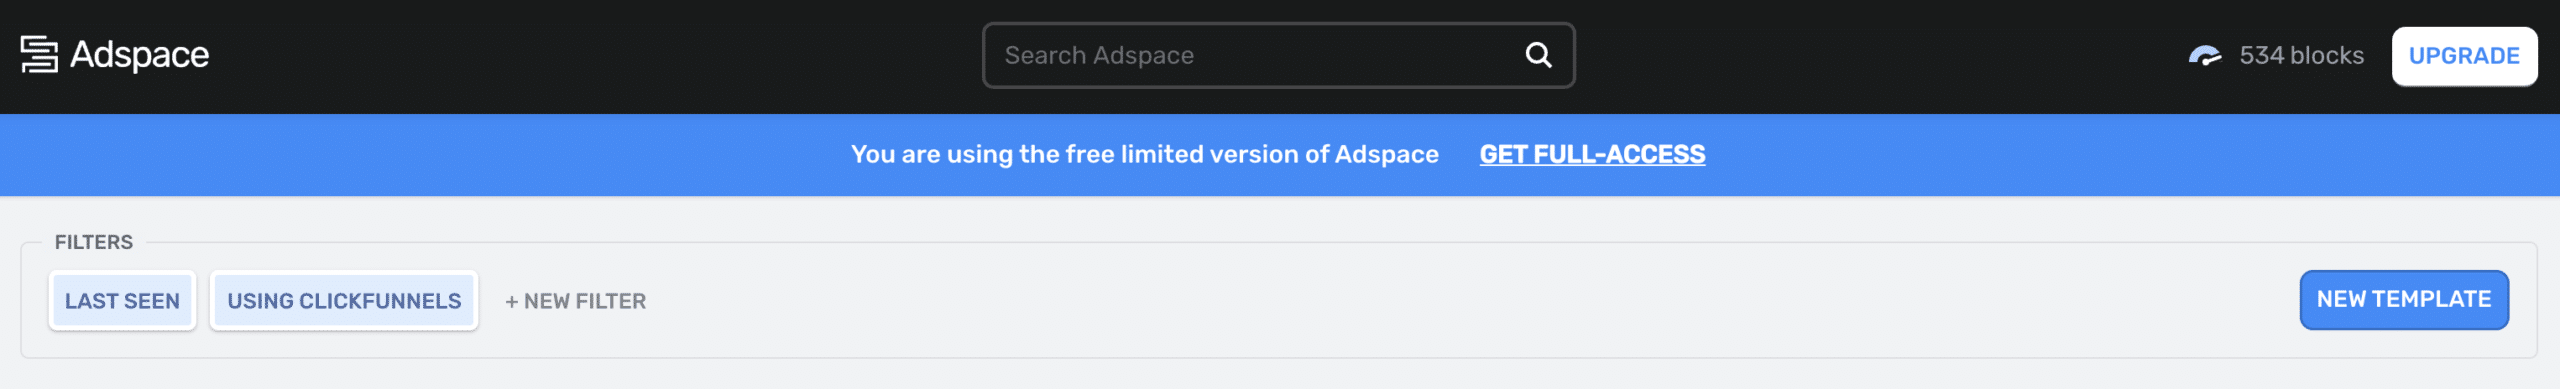 adspace free trial